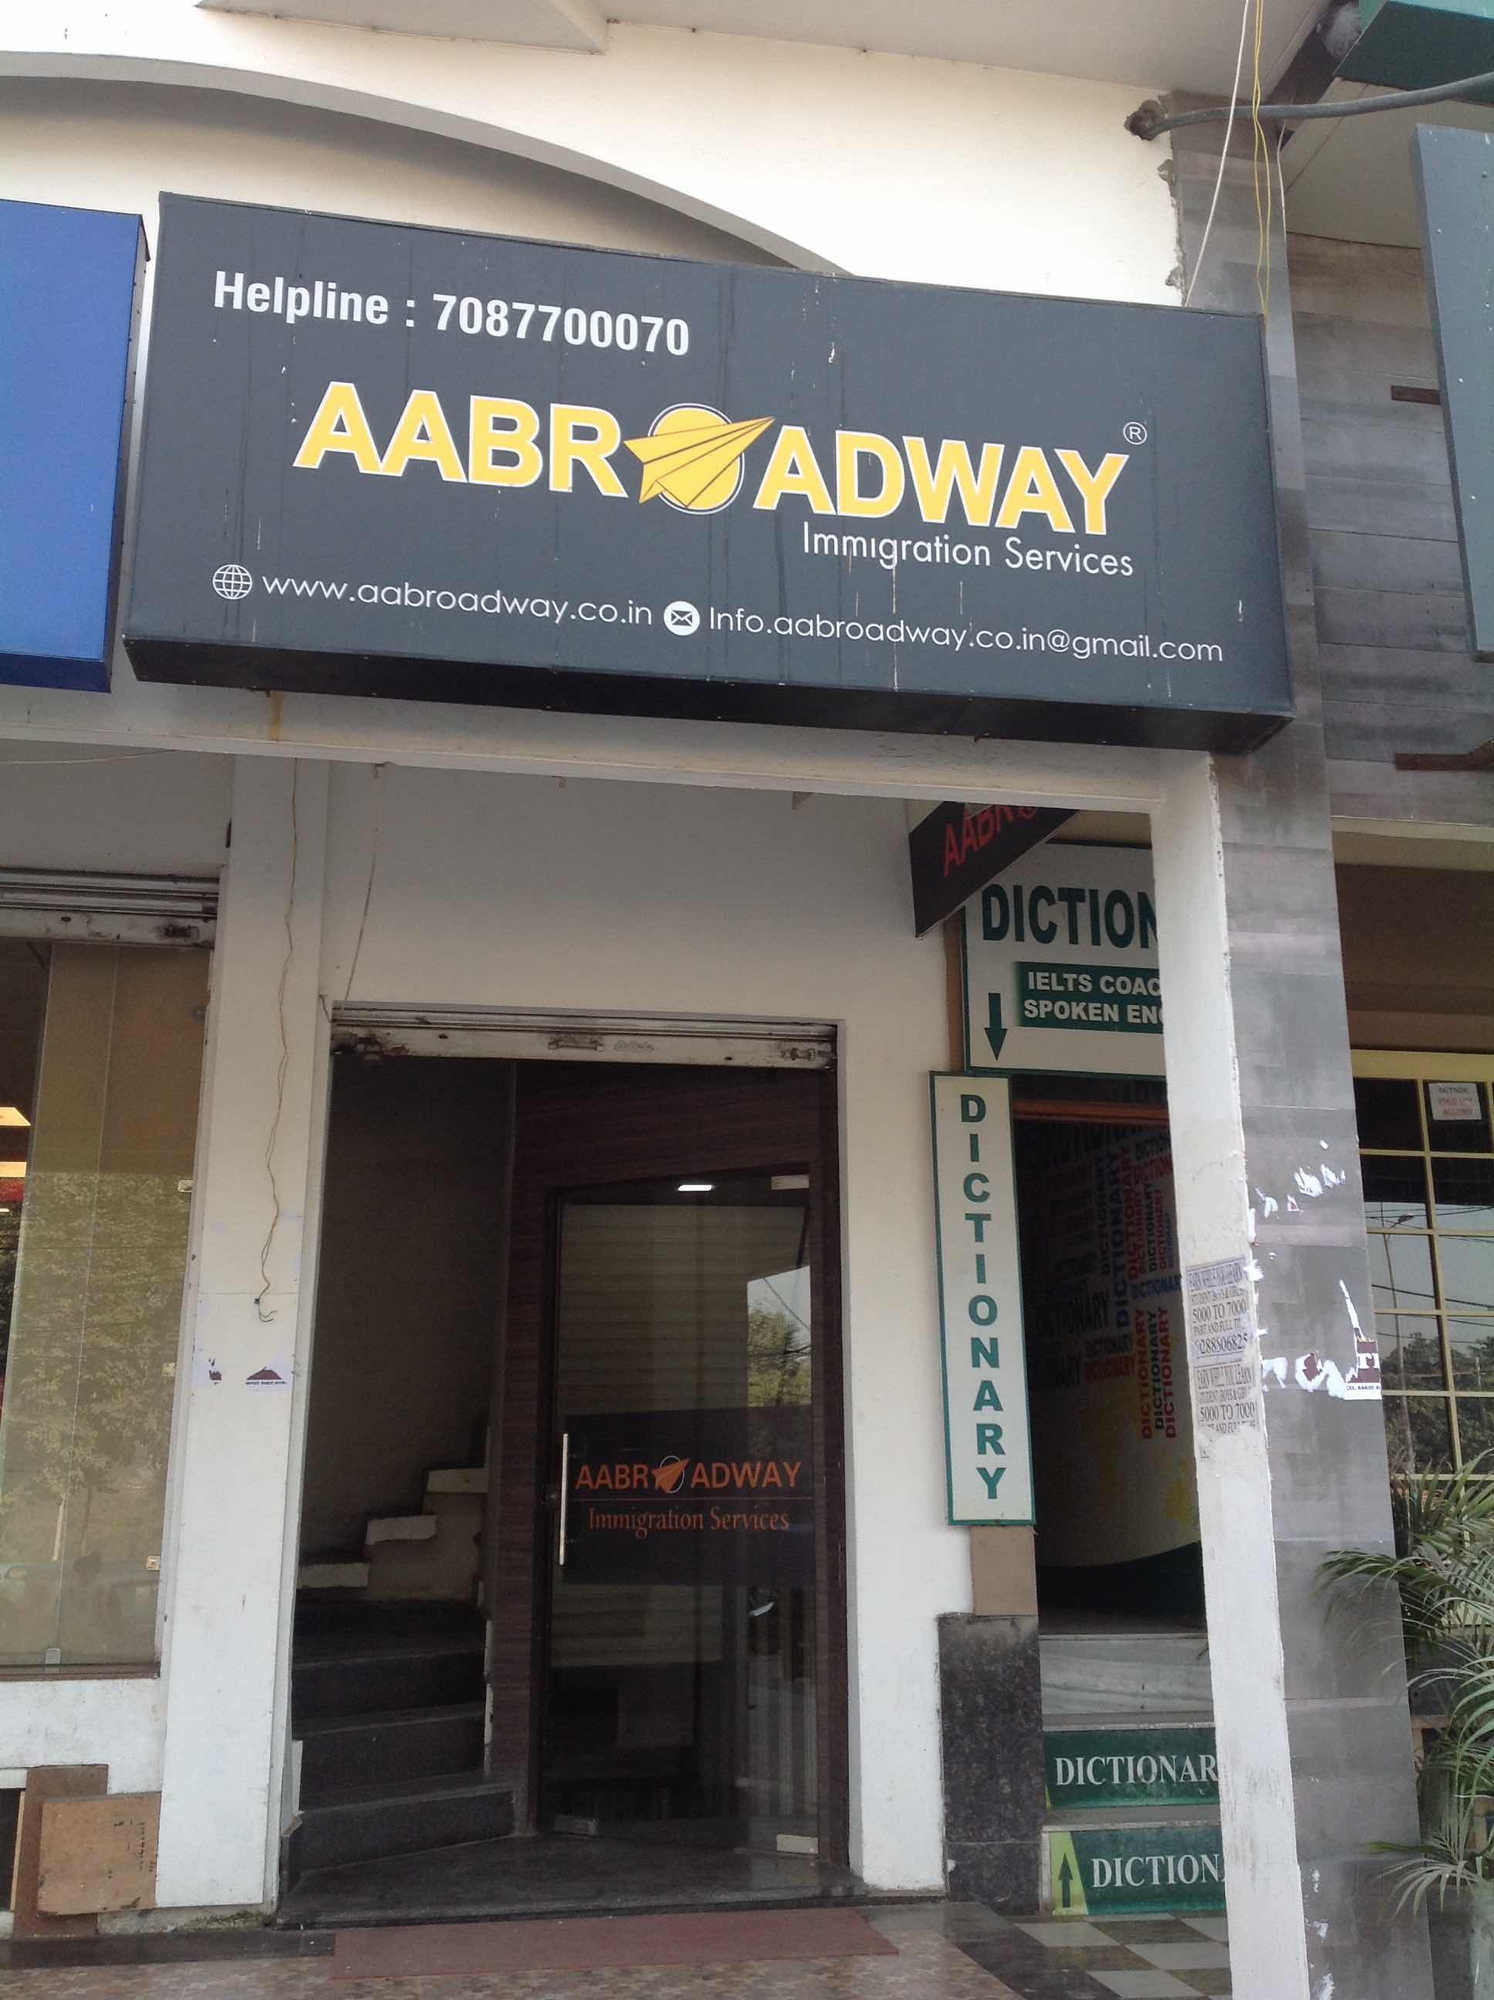 Aabroadway Immigration Services